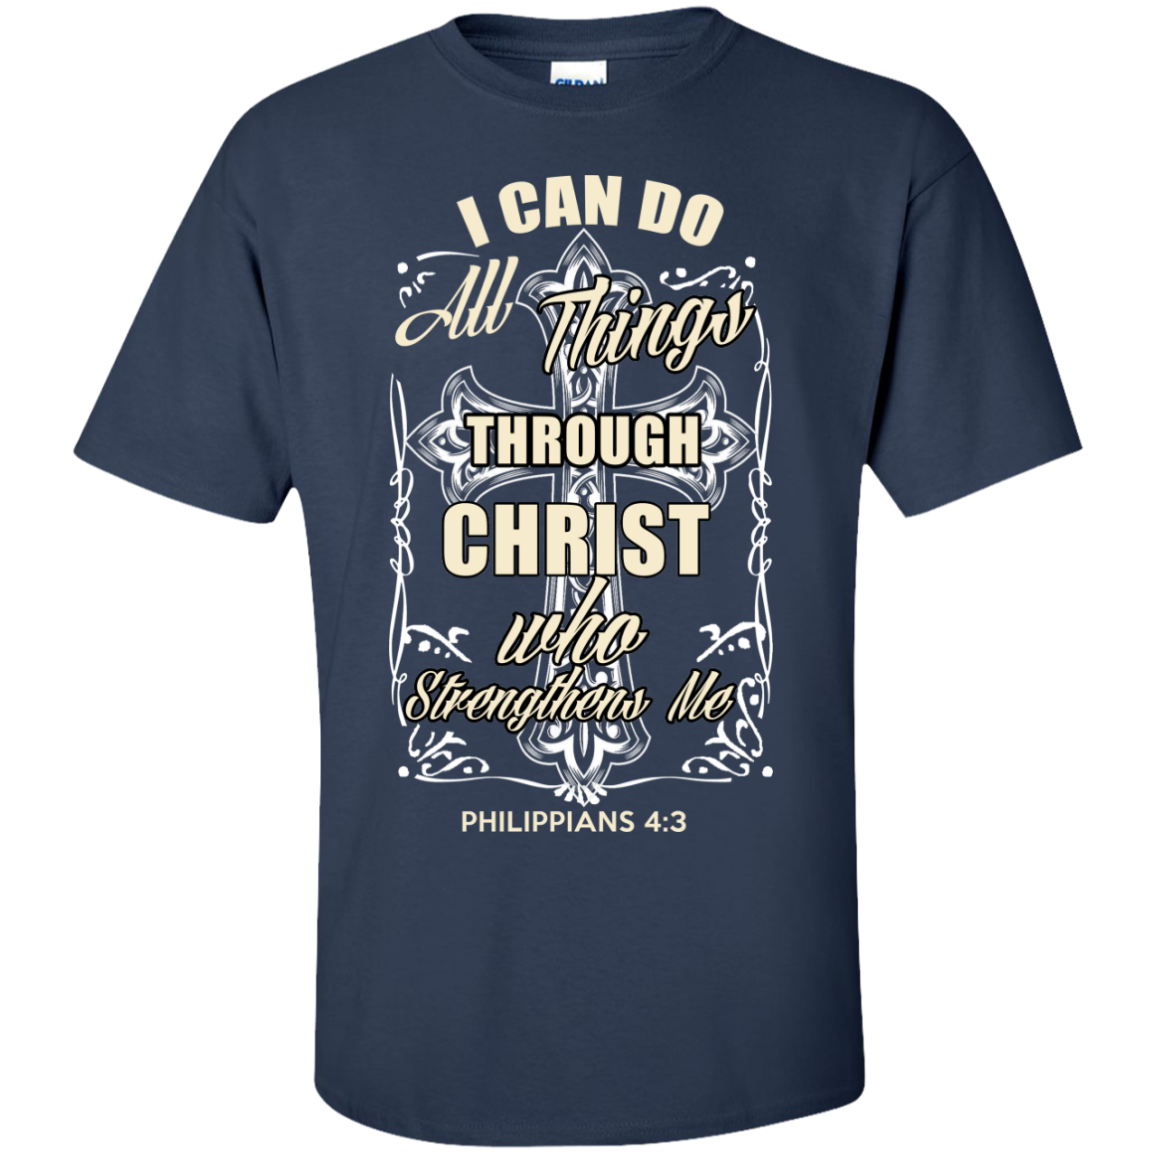 I Can Do All Things Through Christ Who Strengthens Me T-Shirt - Christian T-Shirt - The Sun Cat